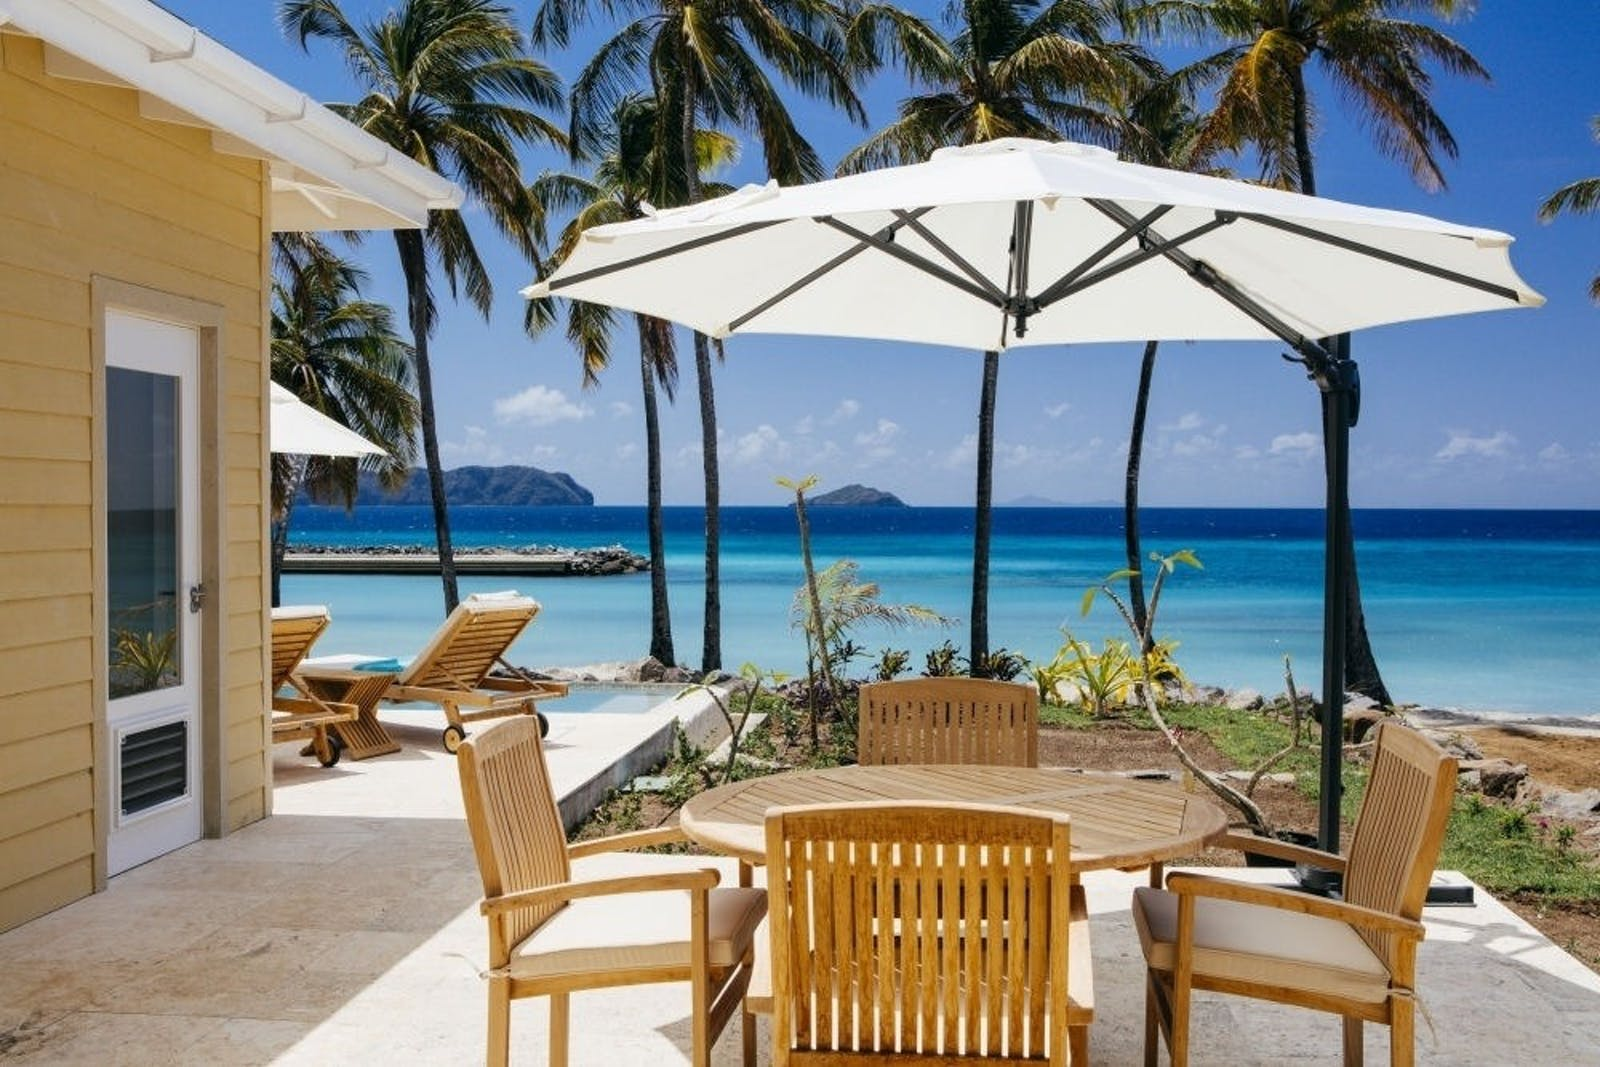 Villa Dining at The Liming, St Vincent & The Grenadines, Caribbean